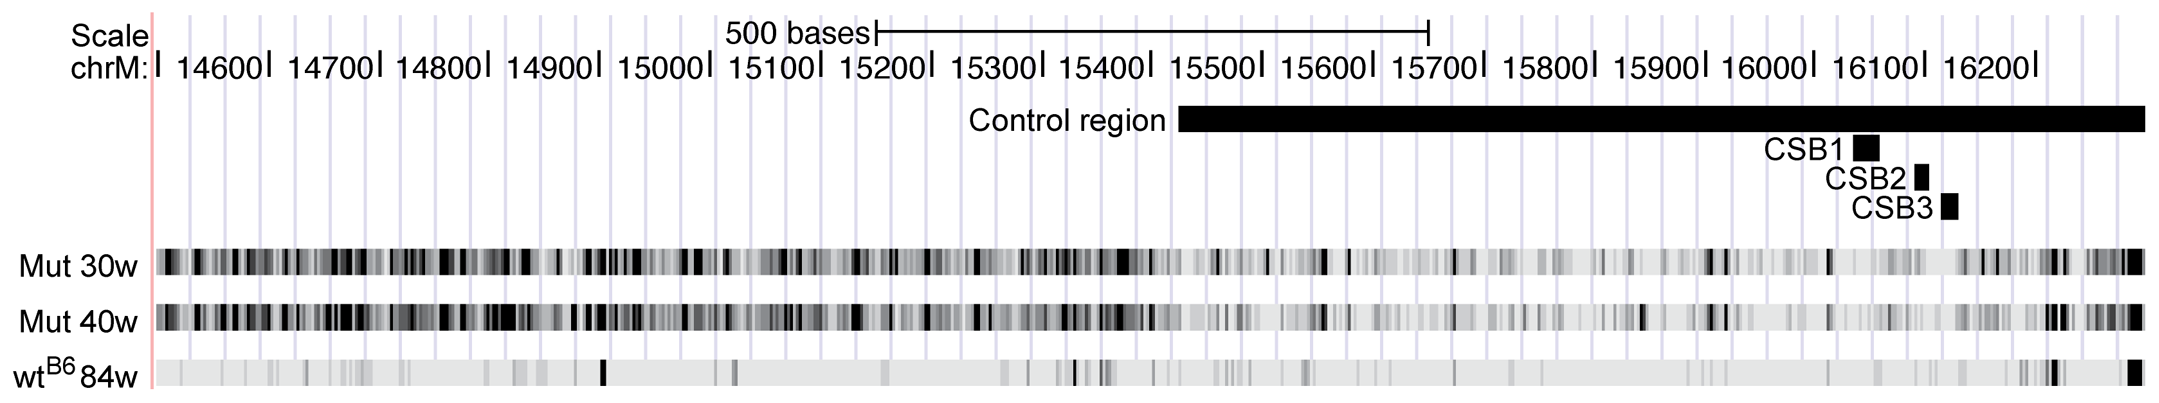 Mutation frequencies for the two mtDNA mutator mice (Mut 30w and Mut 40w) and the C57Bl/6N 84-week-old mouse (wt<sup>B6</sup>) in a region including the control region.